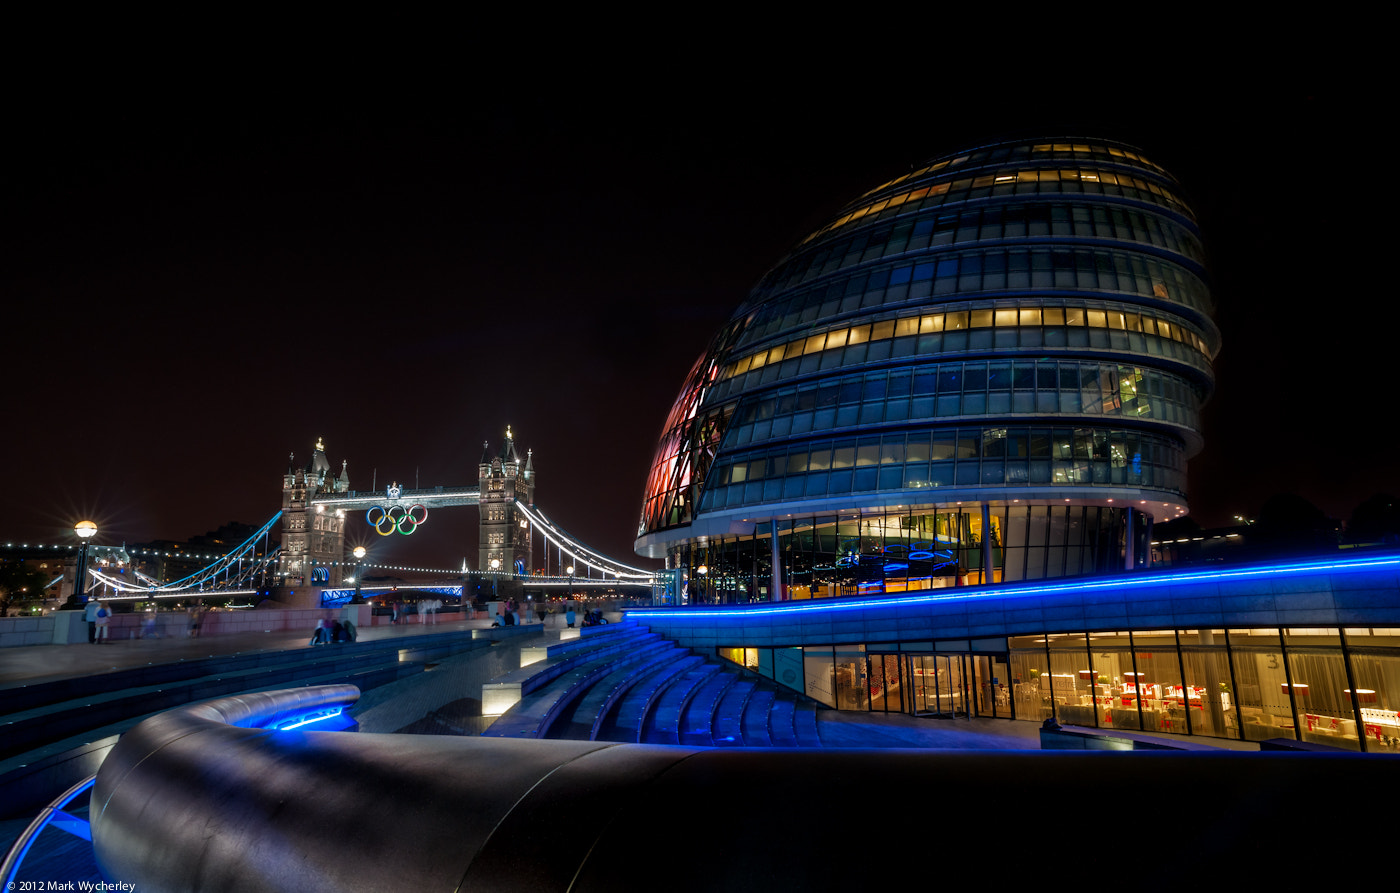 Photograph London City Hall by Mark Wycherley on 500px